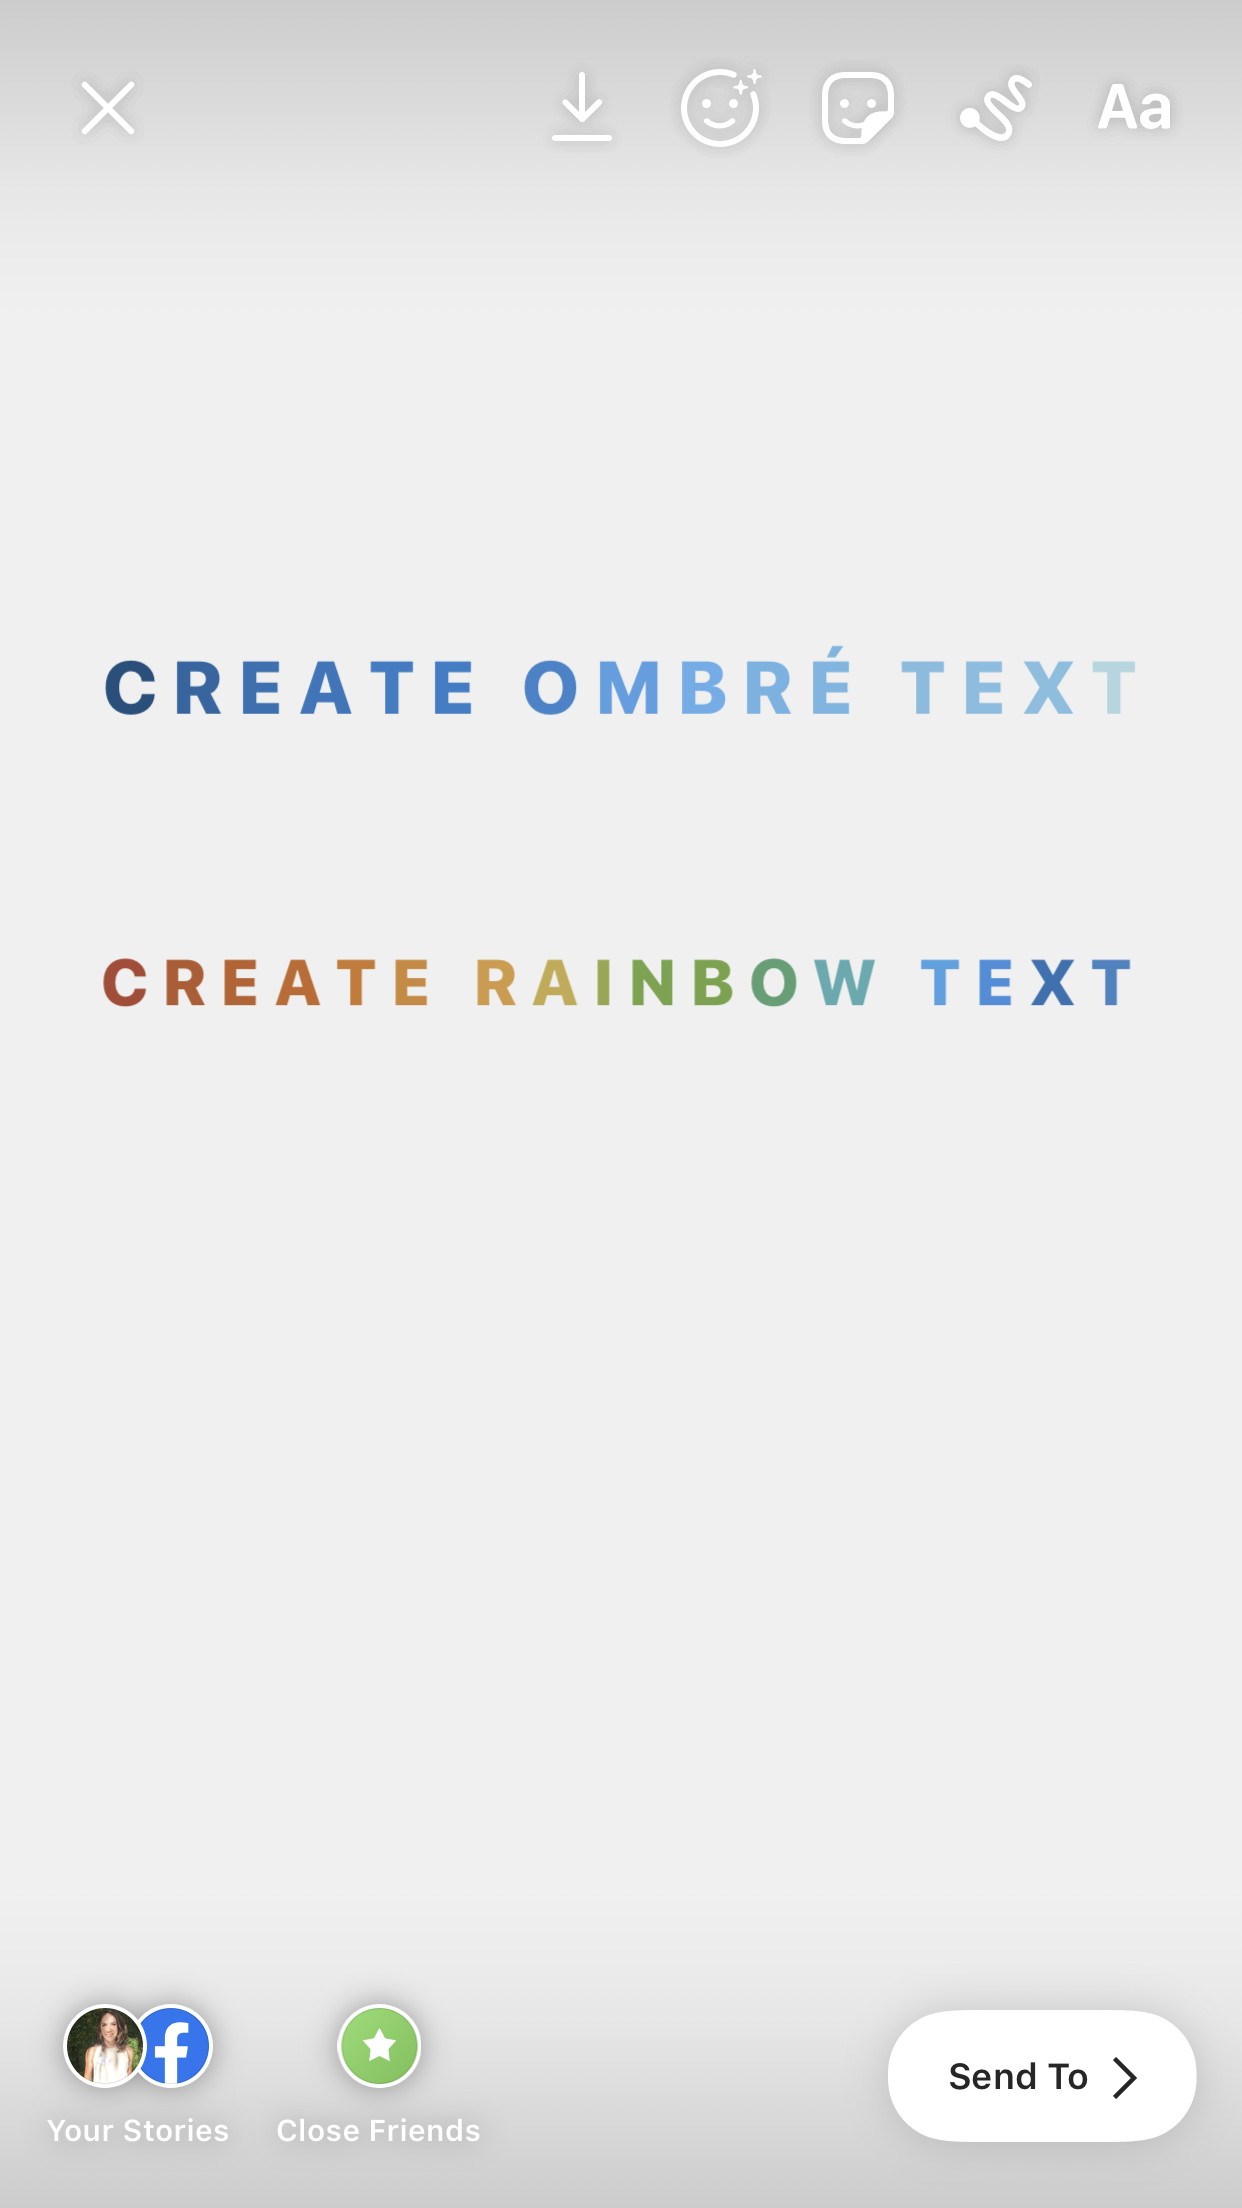 instagram hacks - create ombré or rainbow text